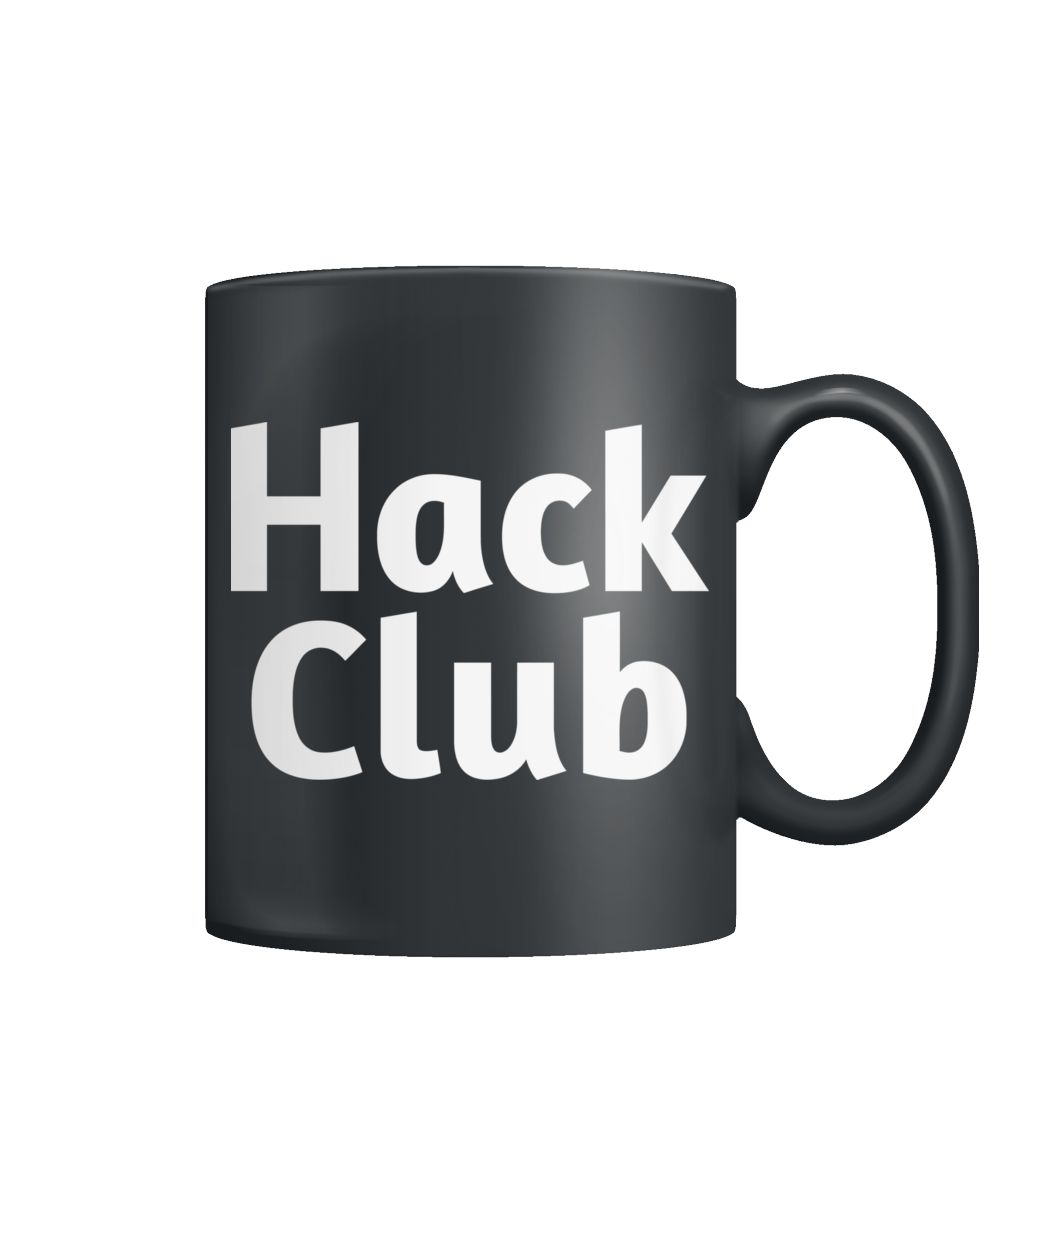 Hack Club/Orpheus Coffee Mug - Dark Mode